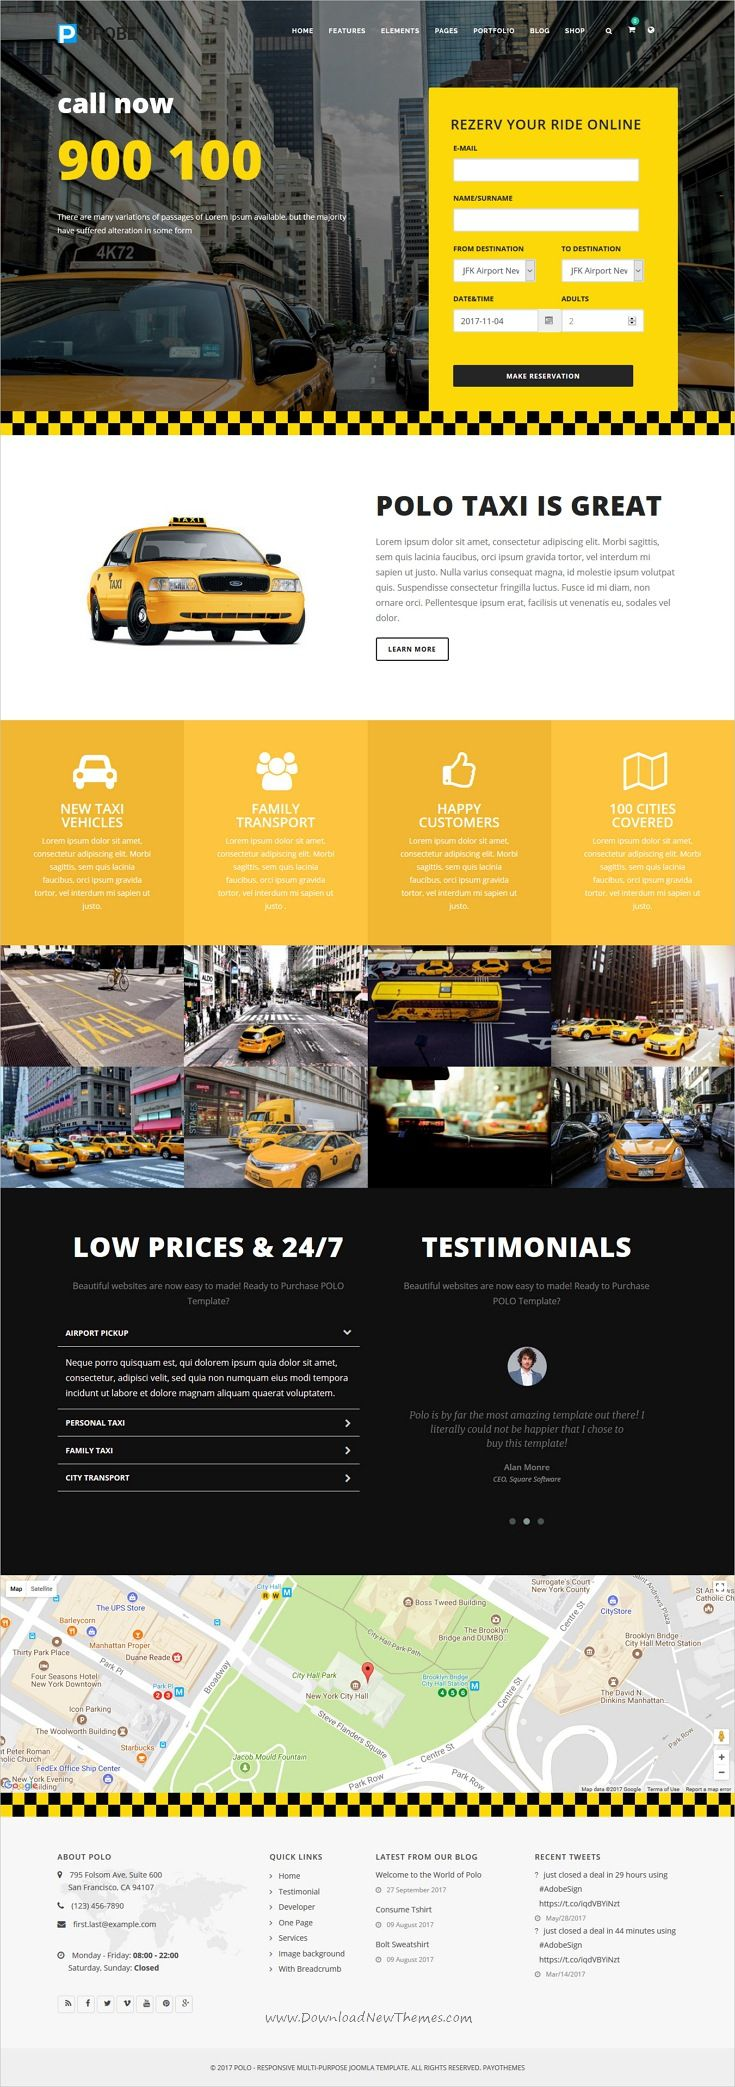 Polo Is Clean And Modern Design Multipurpose Responsive Joomla Template For Cab Taxi Services Company Website W Joomla Themes Joomla Wordpress Website Design